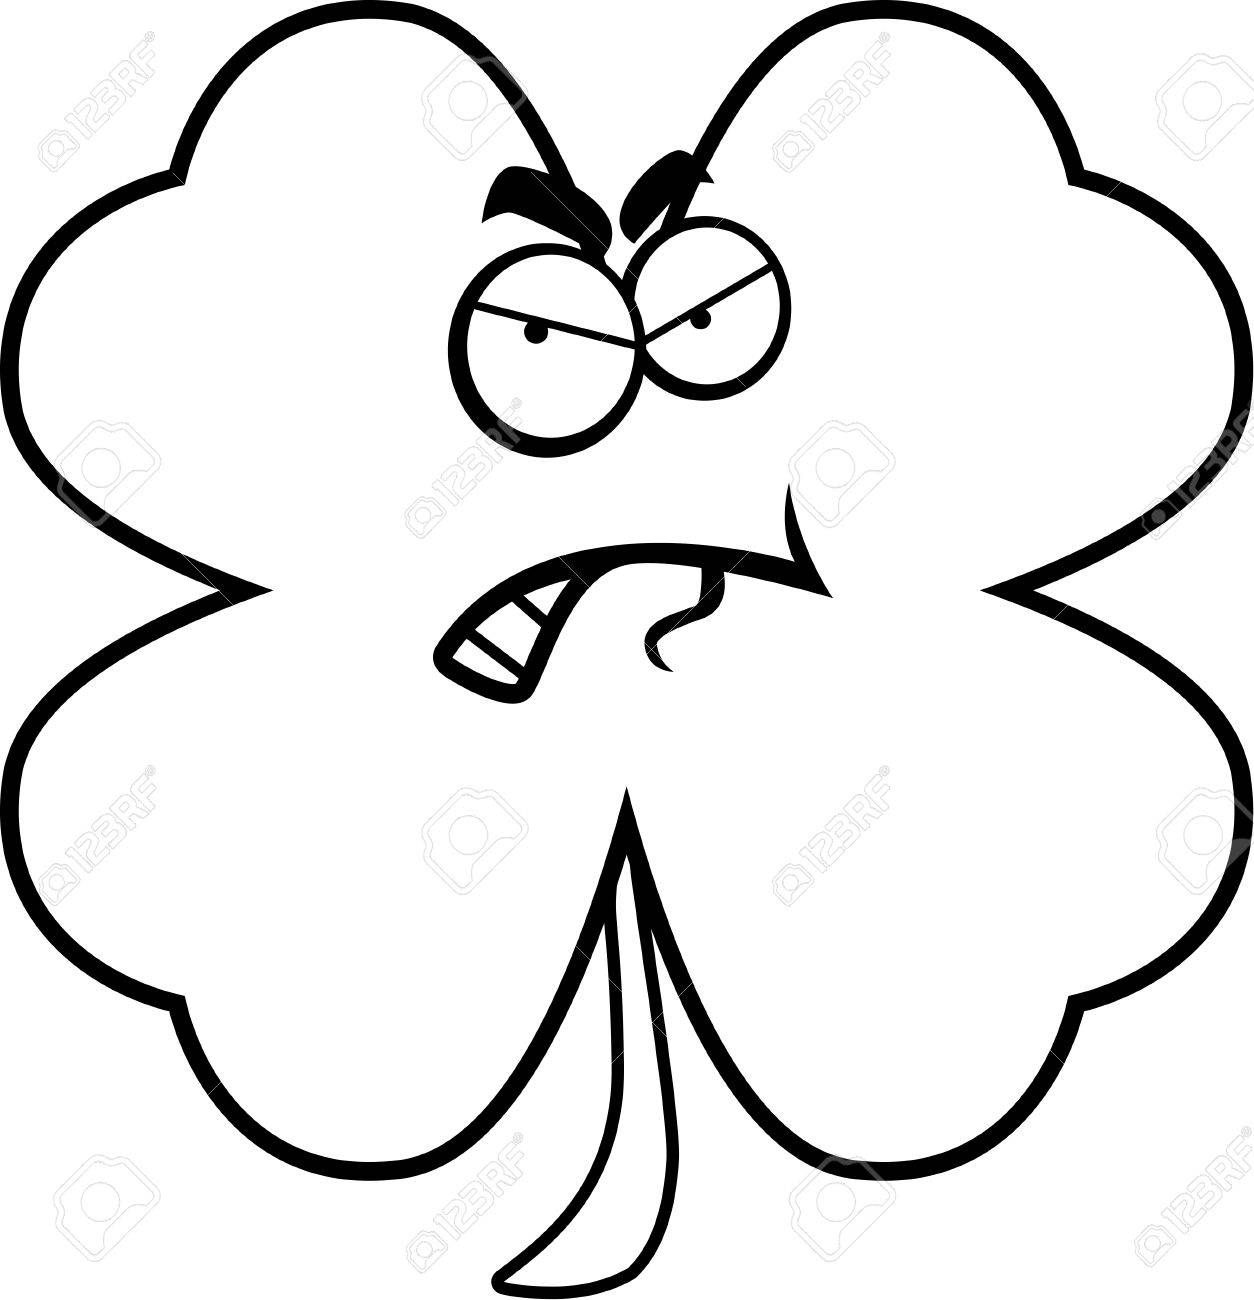 A cartoon four leaf clover looking angry. - 43332675